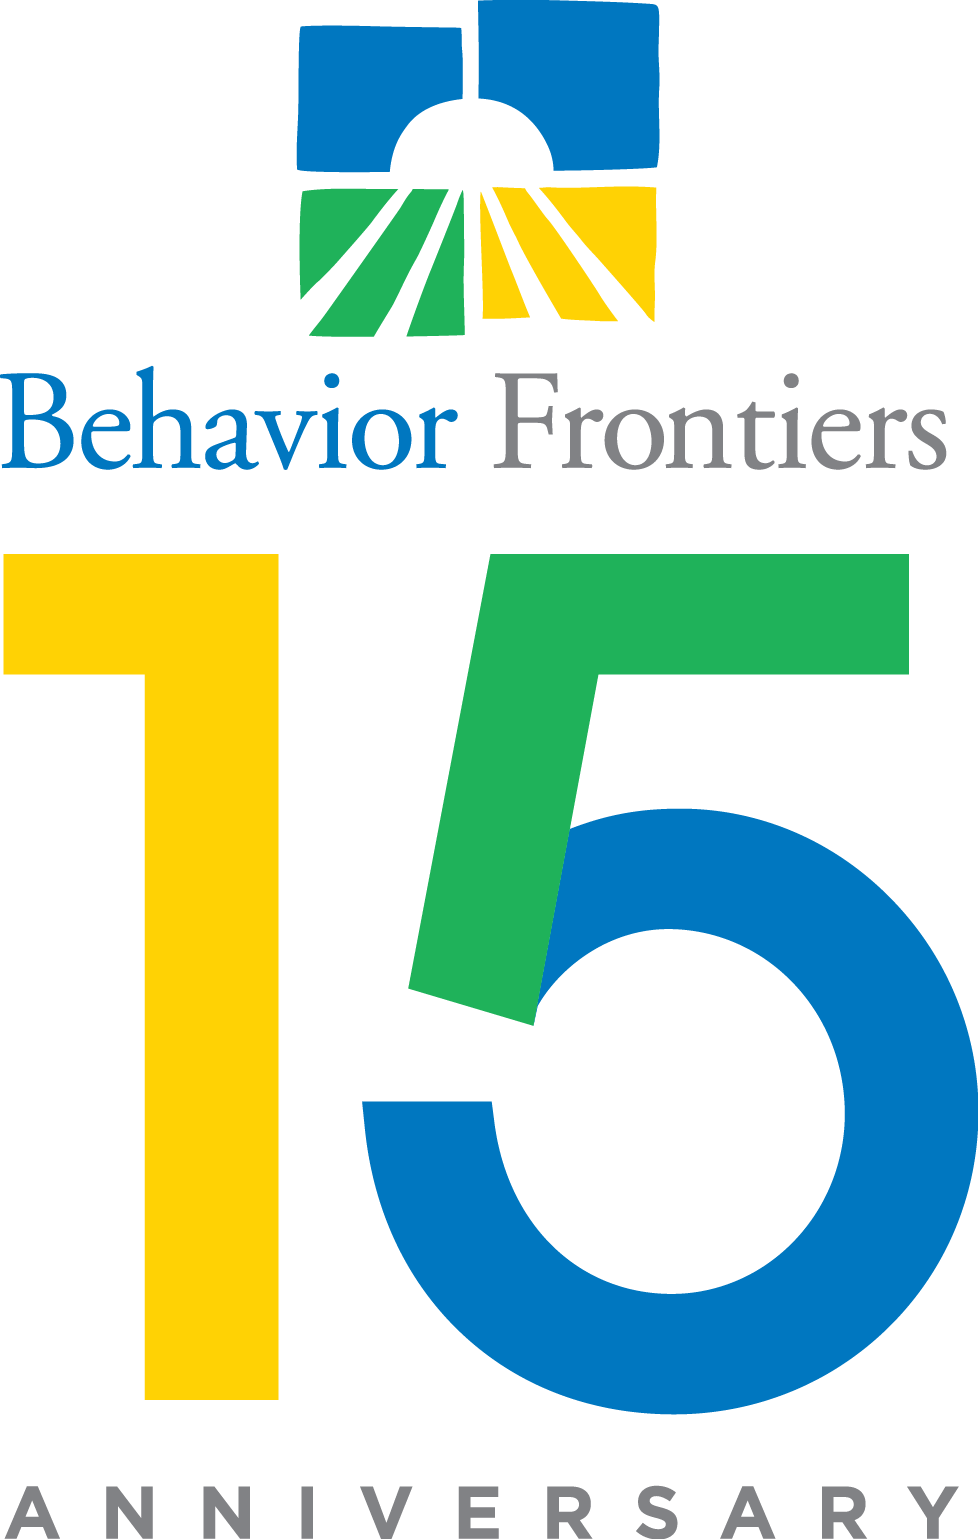 75 - Behavior Frontiers